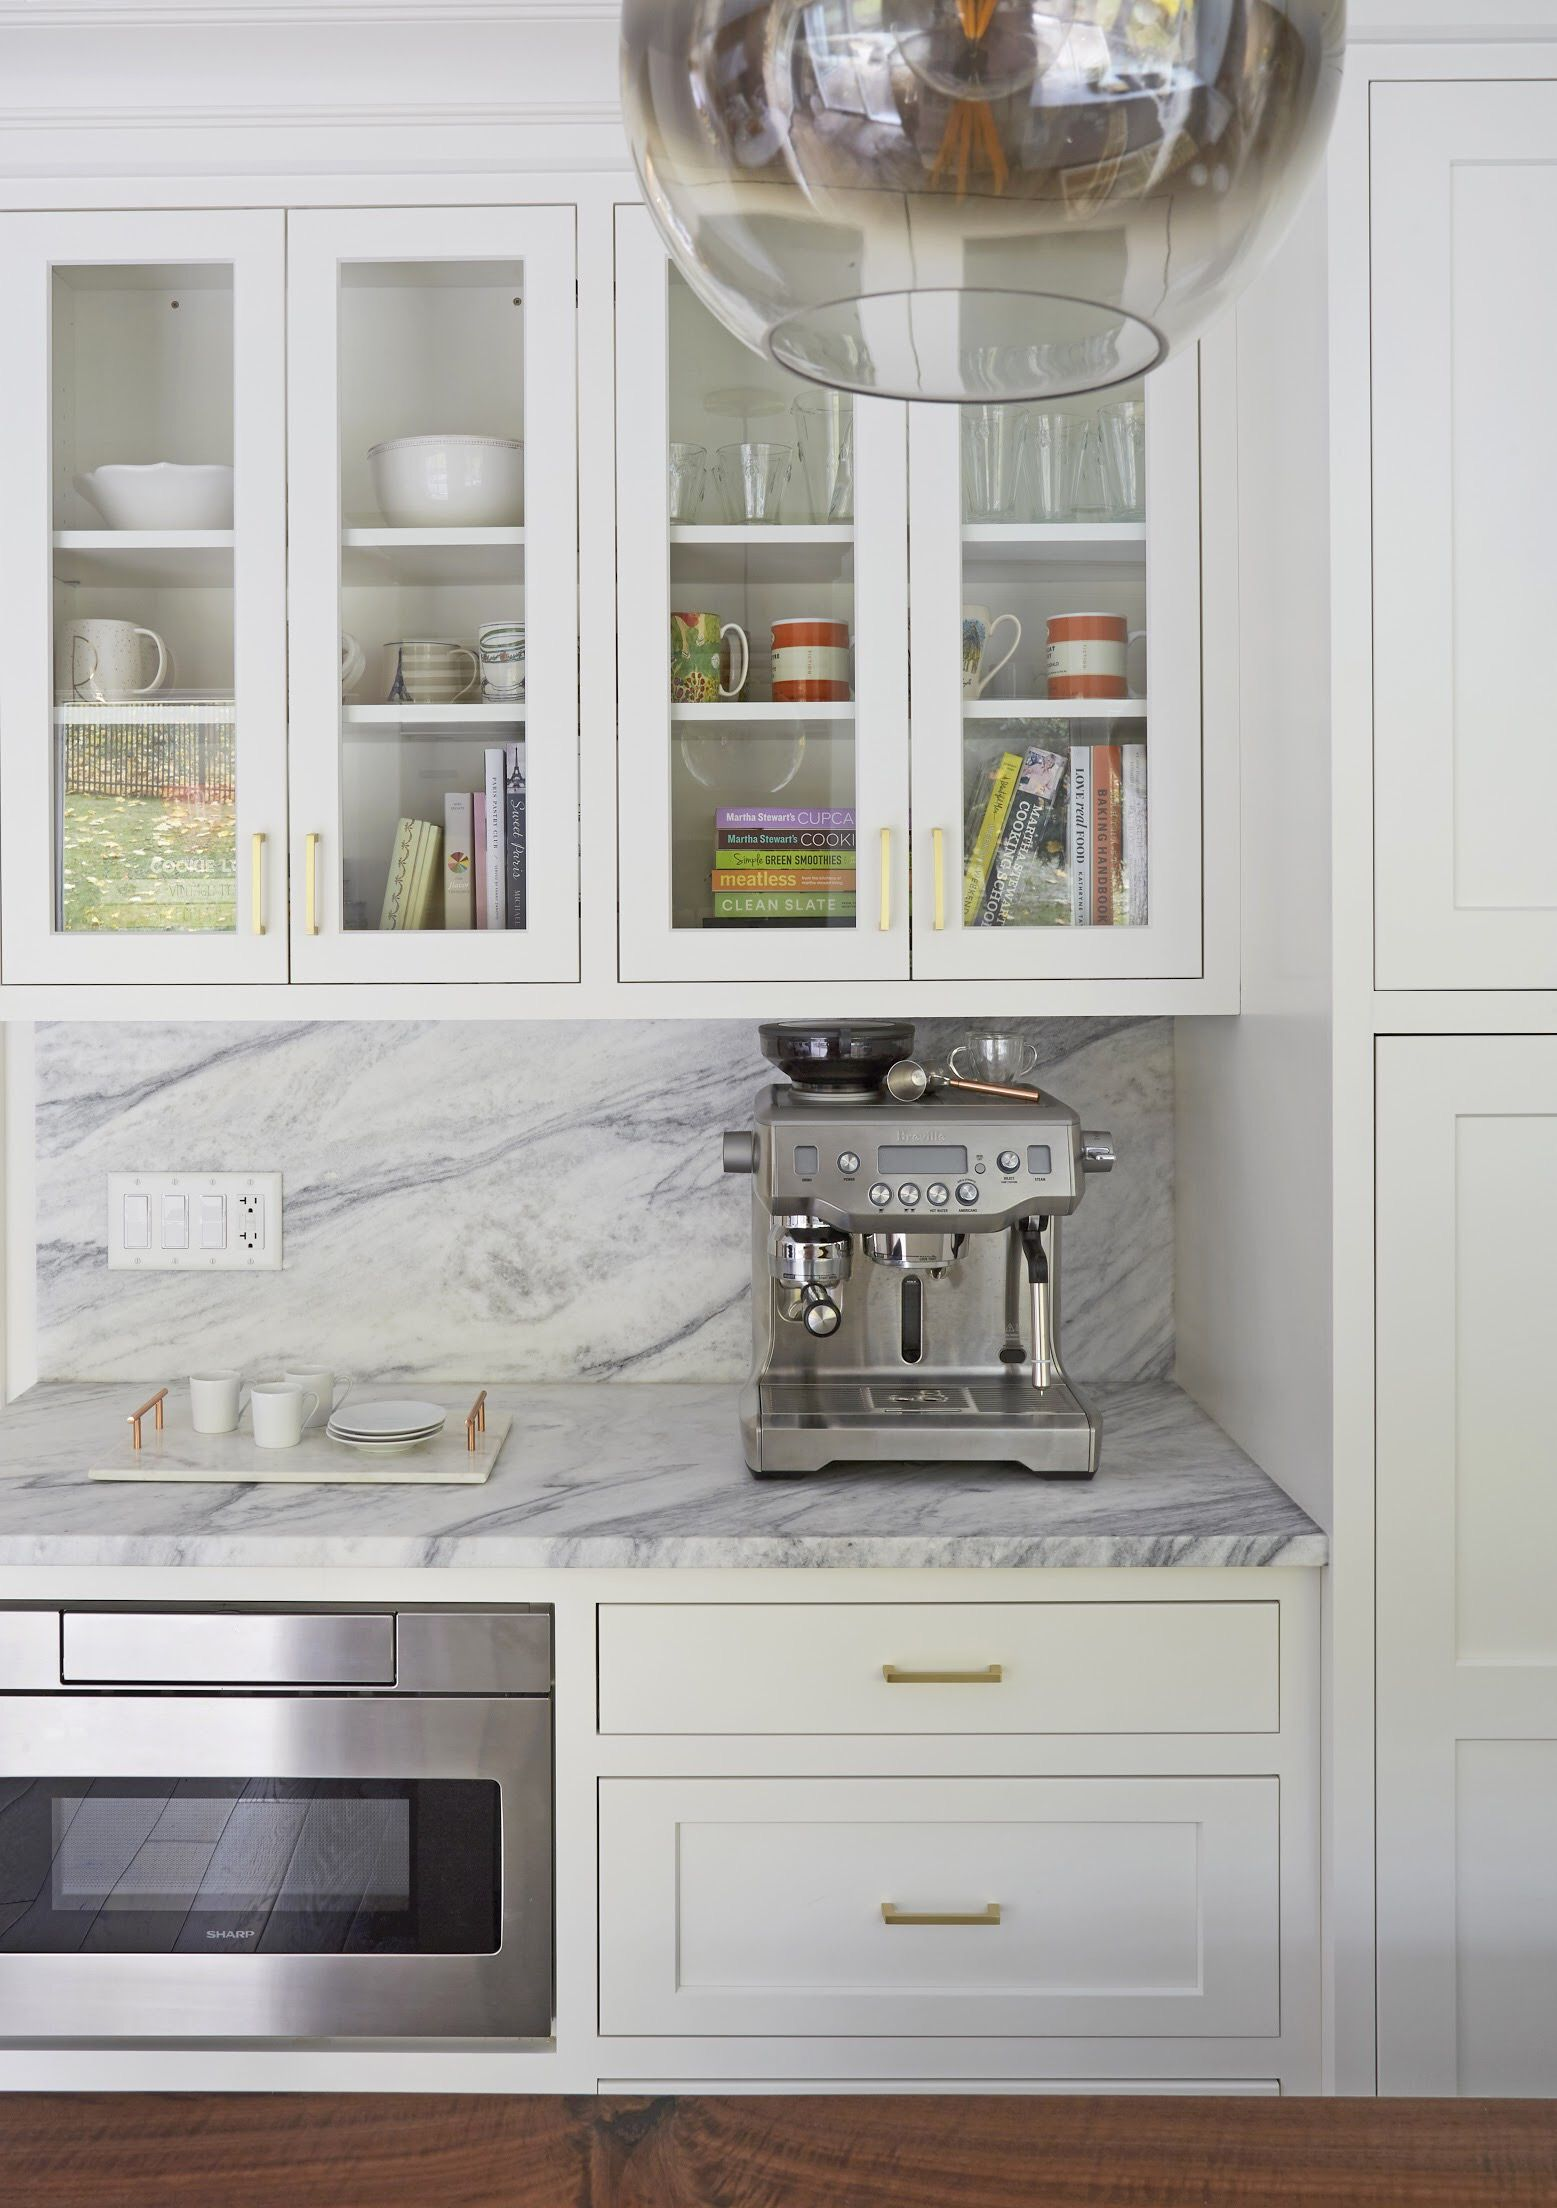 Kitchen Studio Of Glen Ellyn Design White Inset Cabinetry White Cabinets White Kitchen Glass C In 2020 Dream Kitchens Design Kitchen Display Cabinet Studio Kitchen